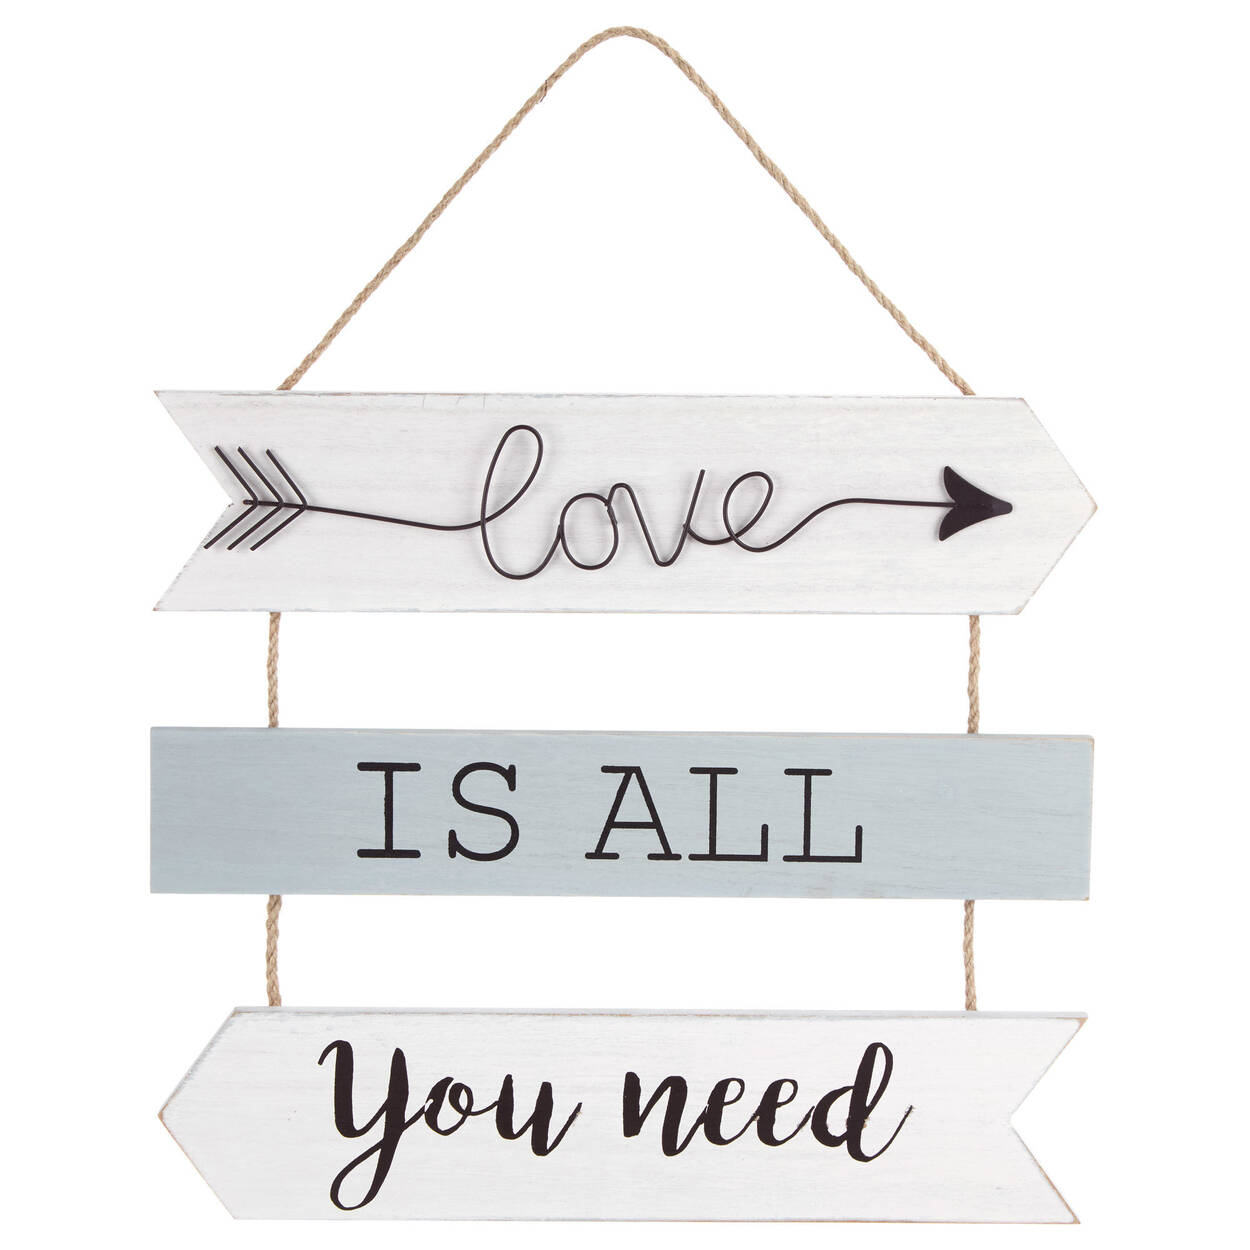 All You Need Wall Art with Rope